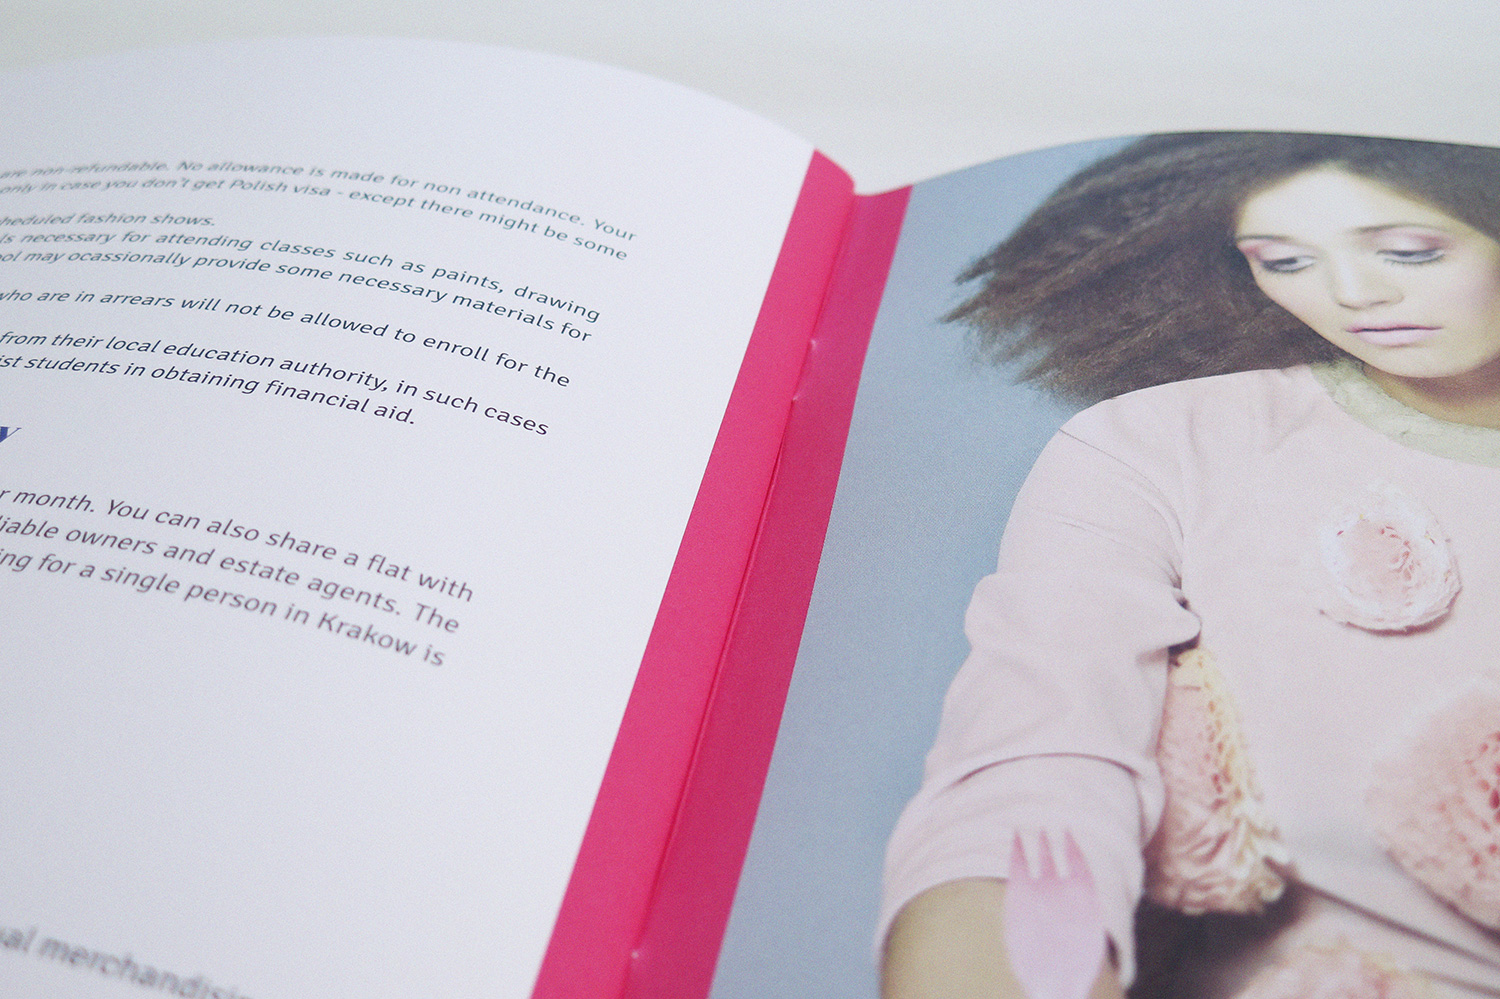 cracow school of art and fashion design brochure by nina gregier (9)